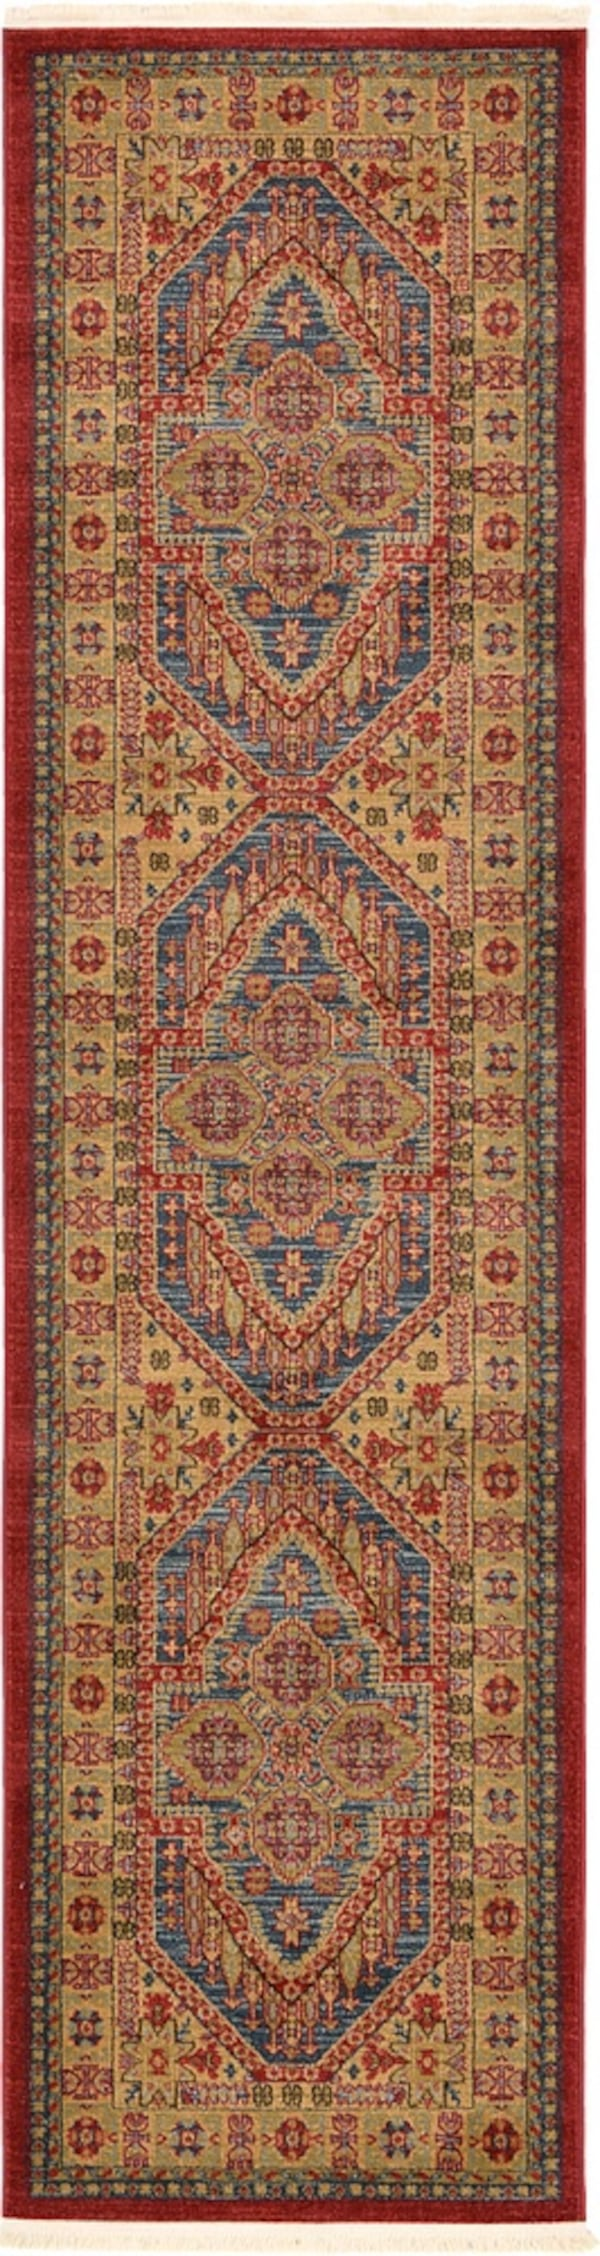 Brand new carpet runner size 2.7x10 nice blue rug runners 26017a59-be4a-4d7b-90ad-f001c262979f